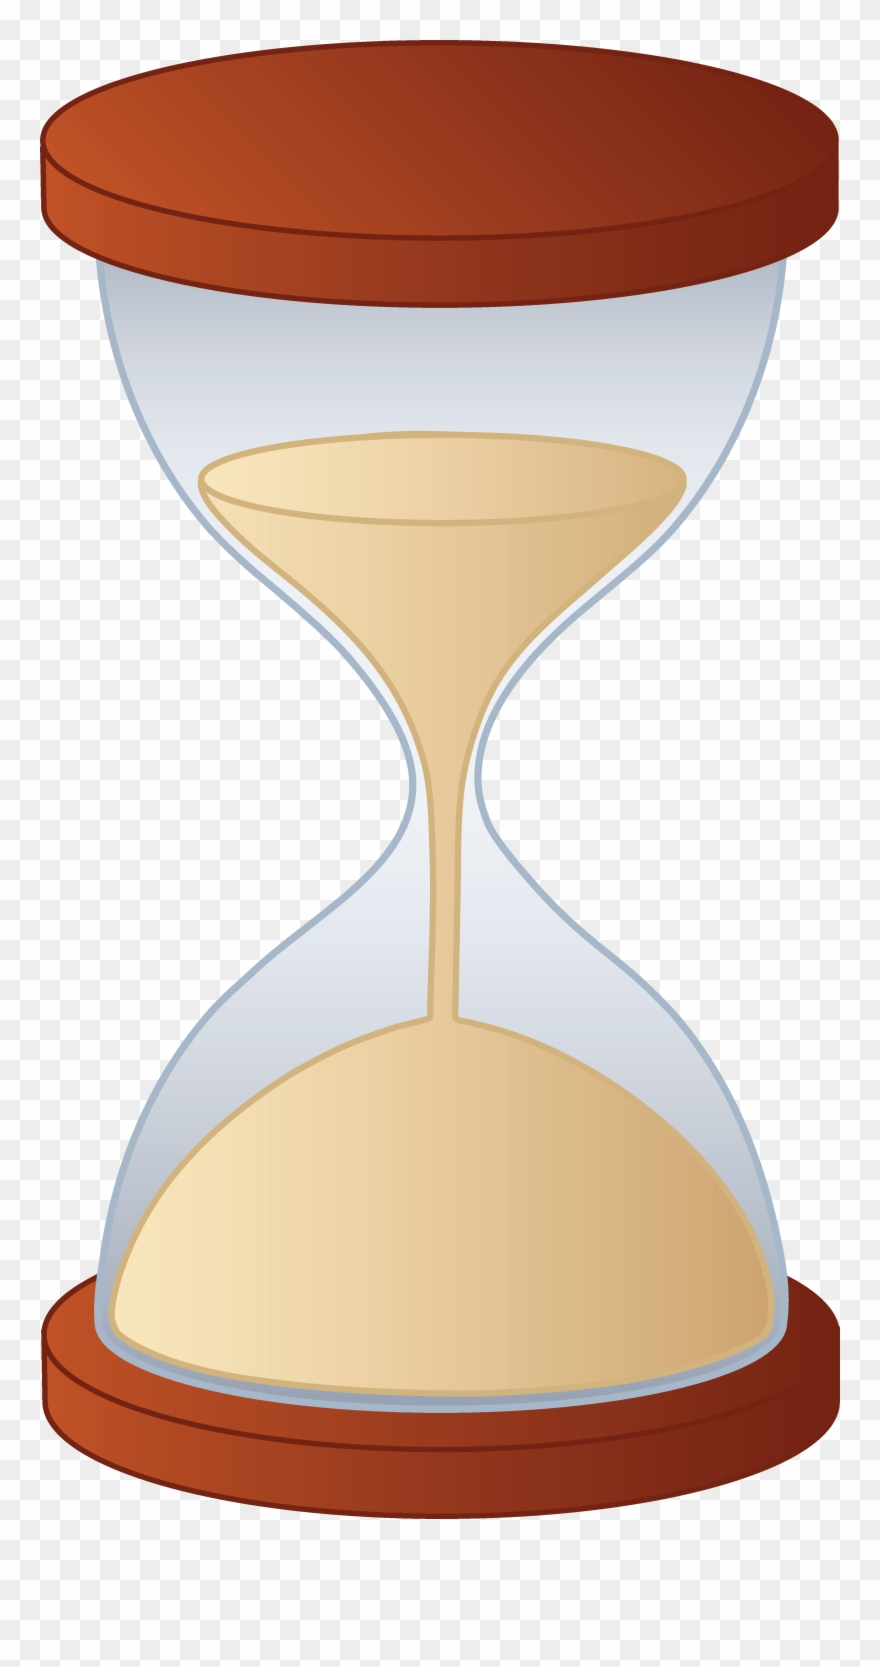 hight resolution of sand clock clipart hourglass clipart png download